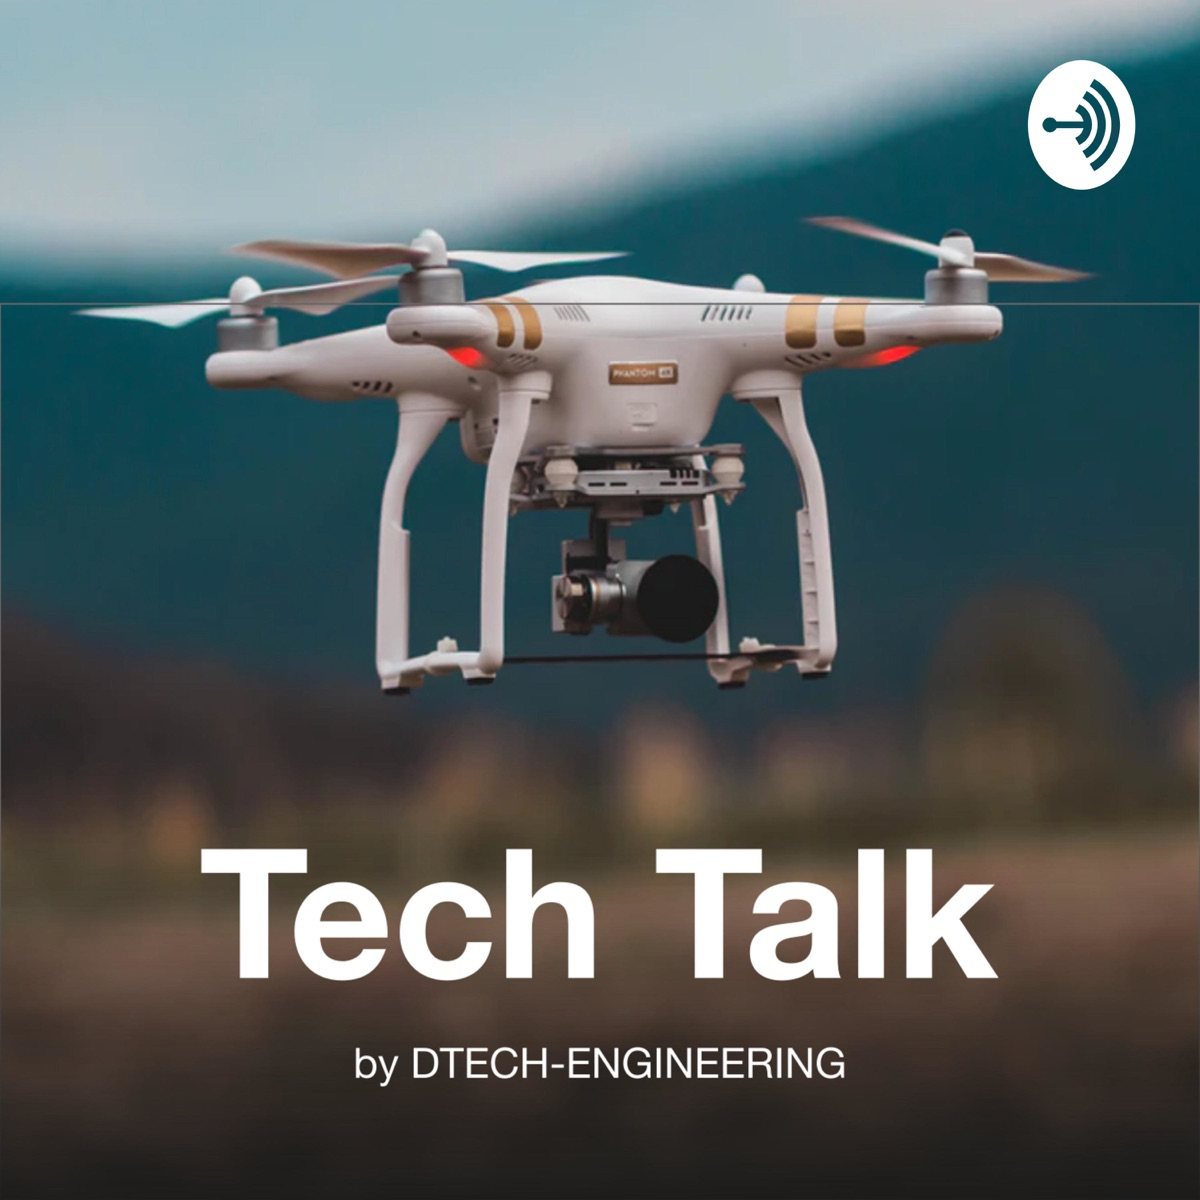 TECH TALK by DTECH-ENGINEERING